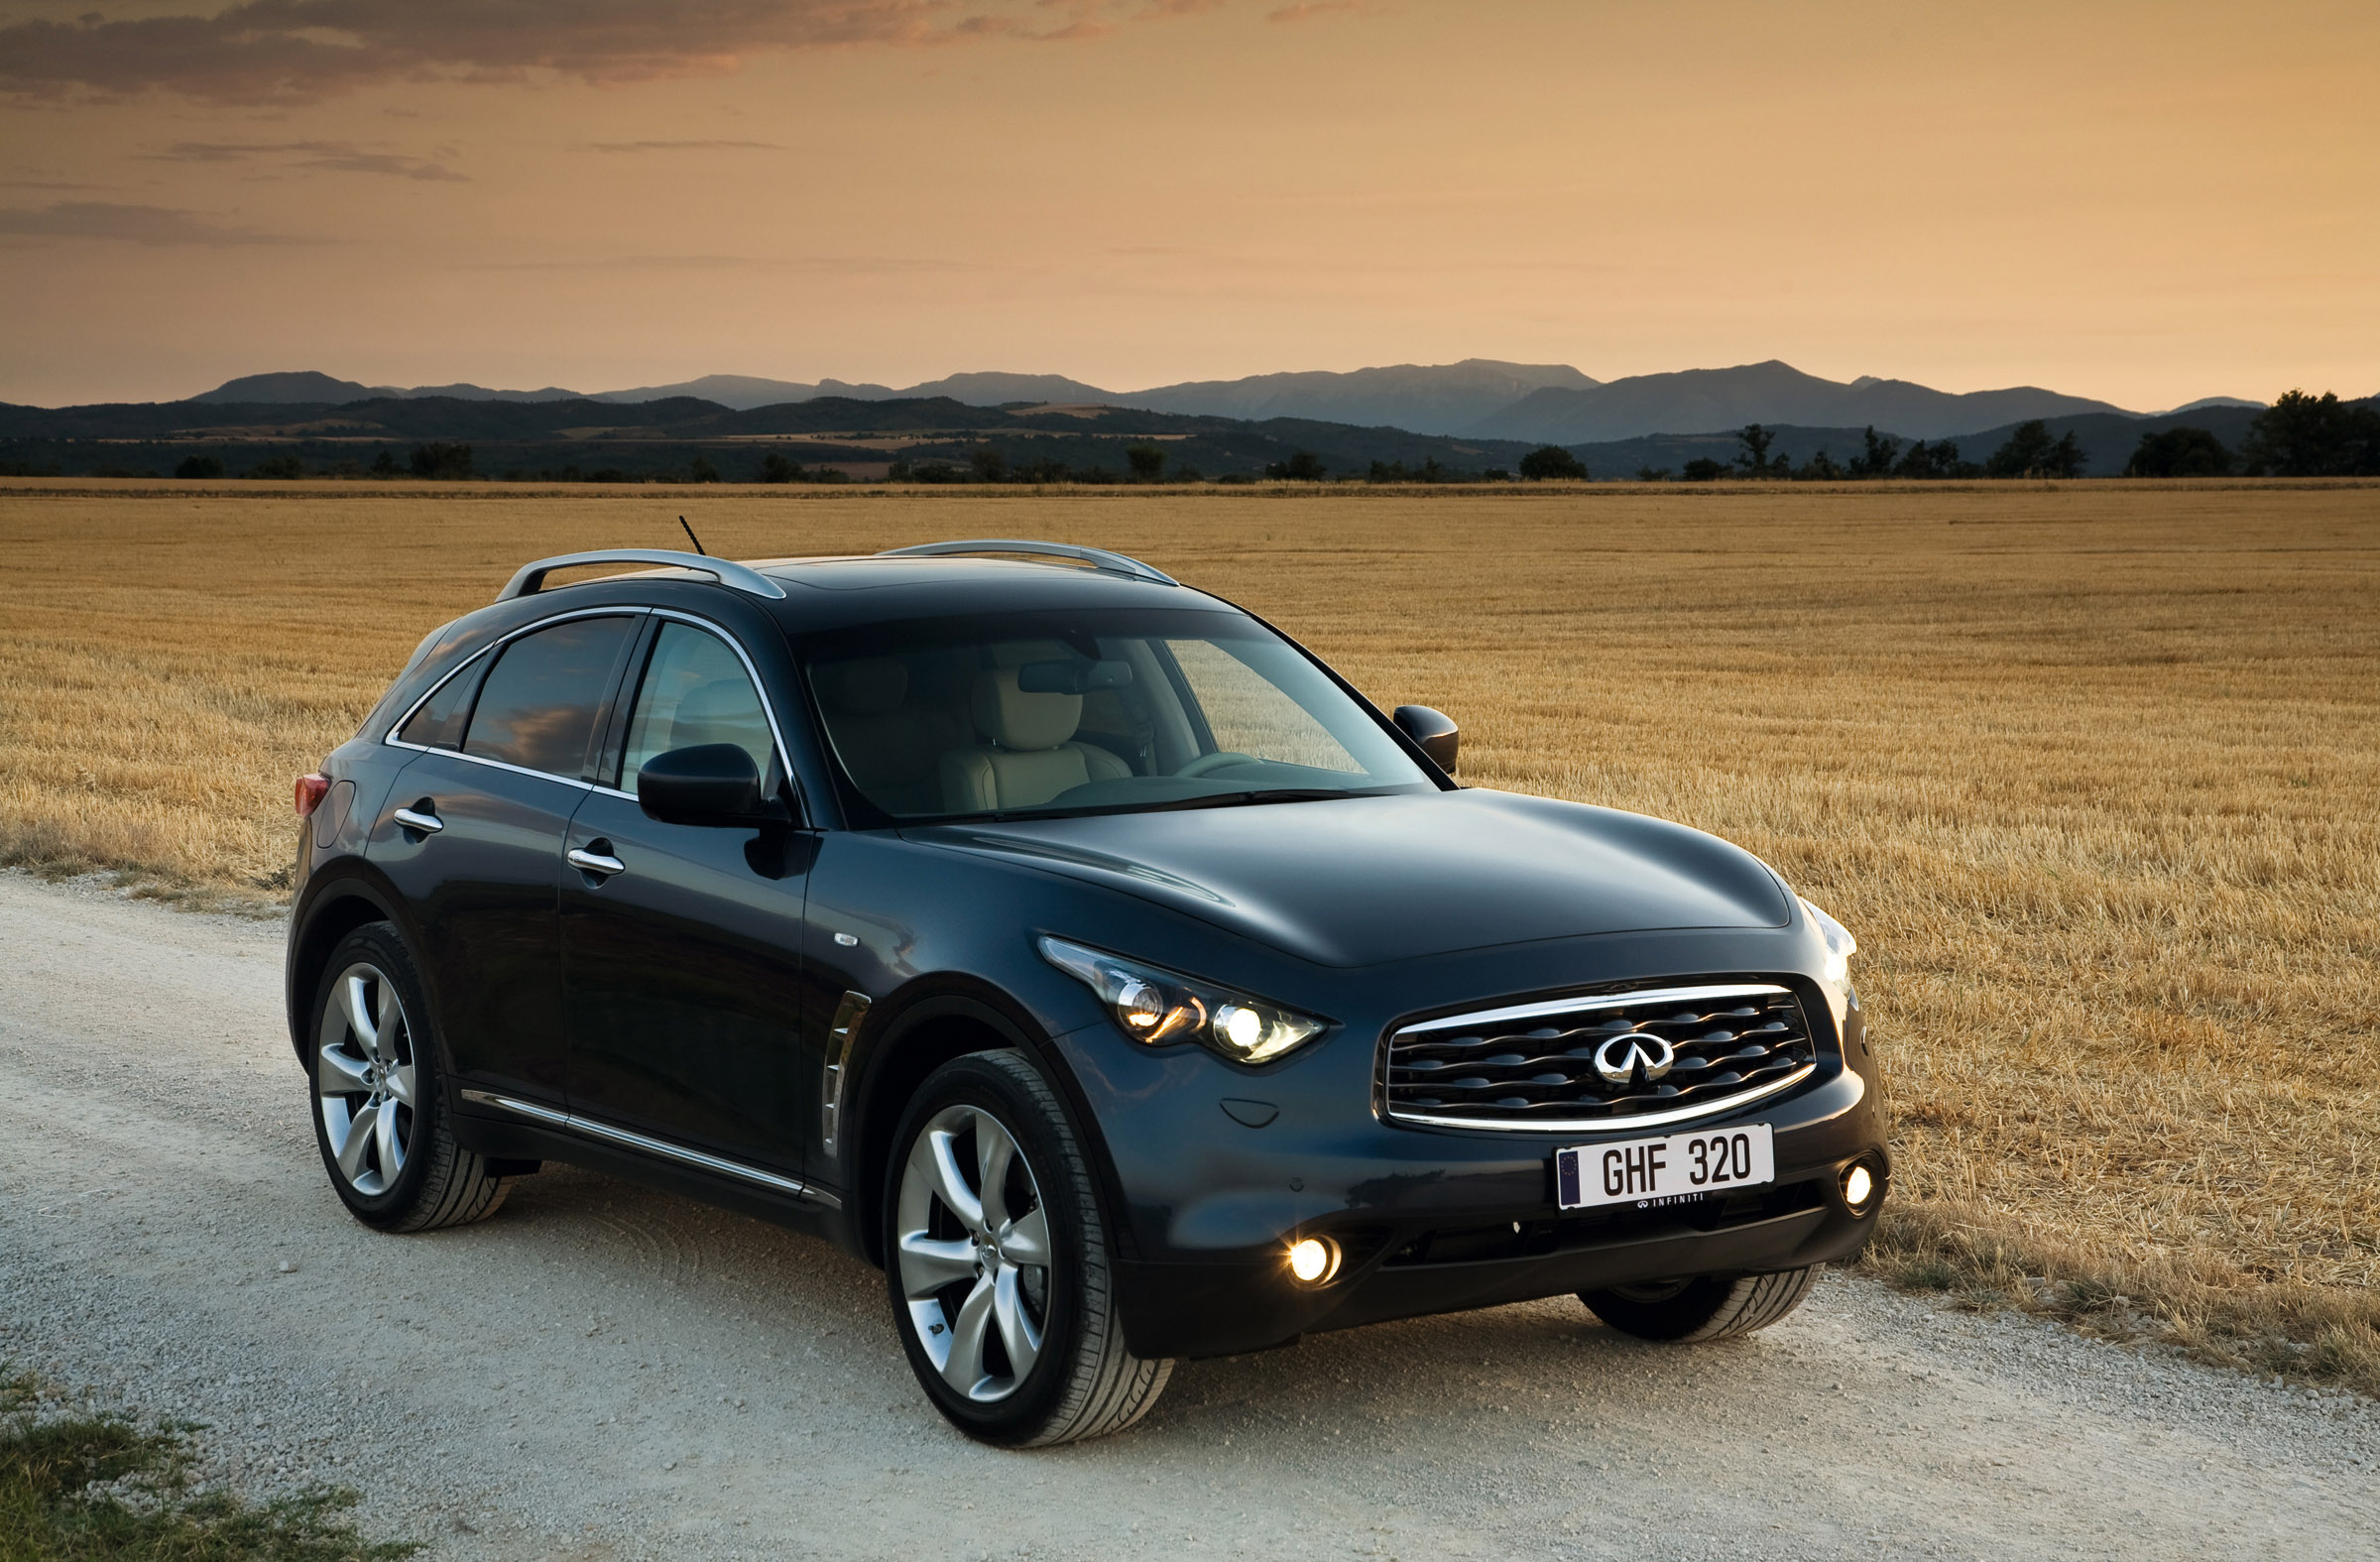 2013 infiniti fx37 black image collections hd cars wallpaper infiniti fx where sports car and suv meet infiniti fx37 vanachro image collections vanachro Gallery